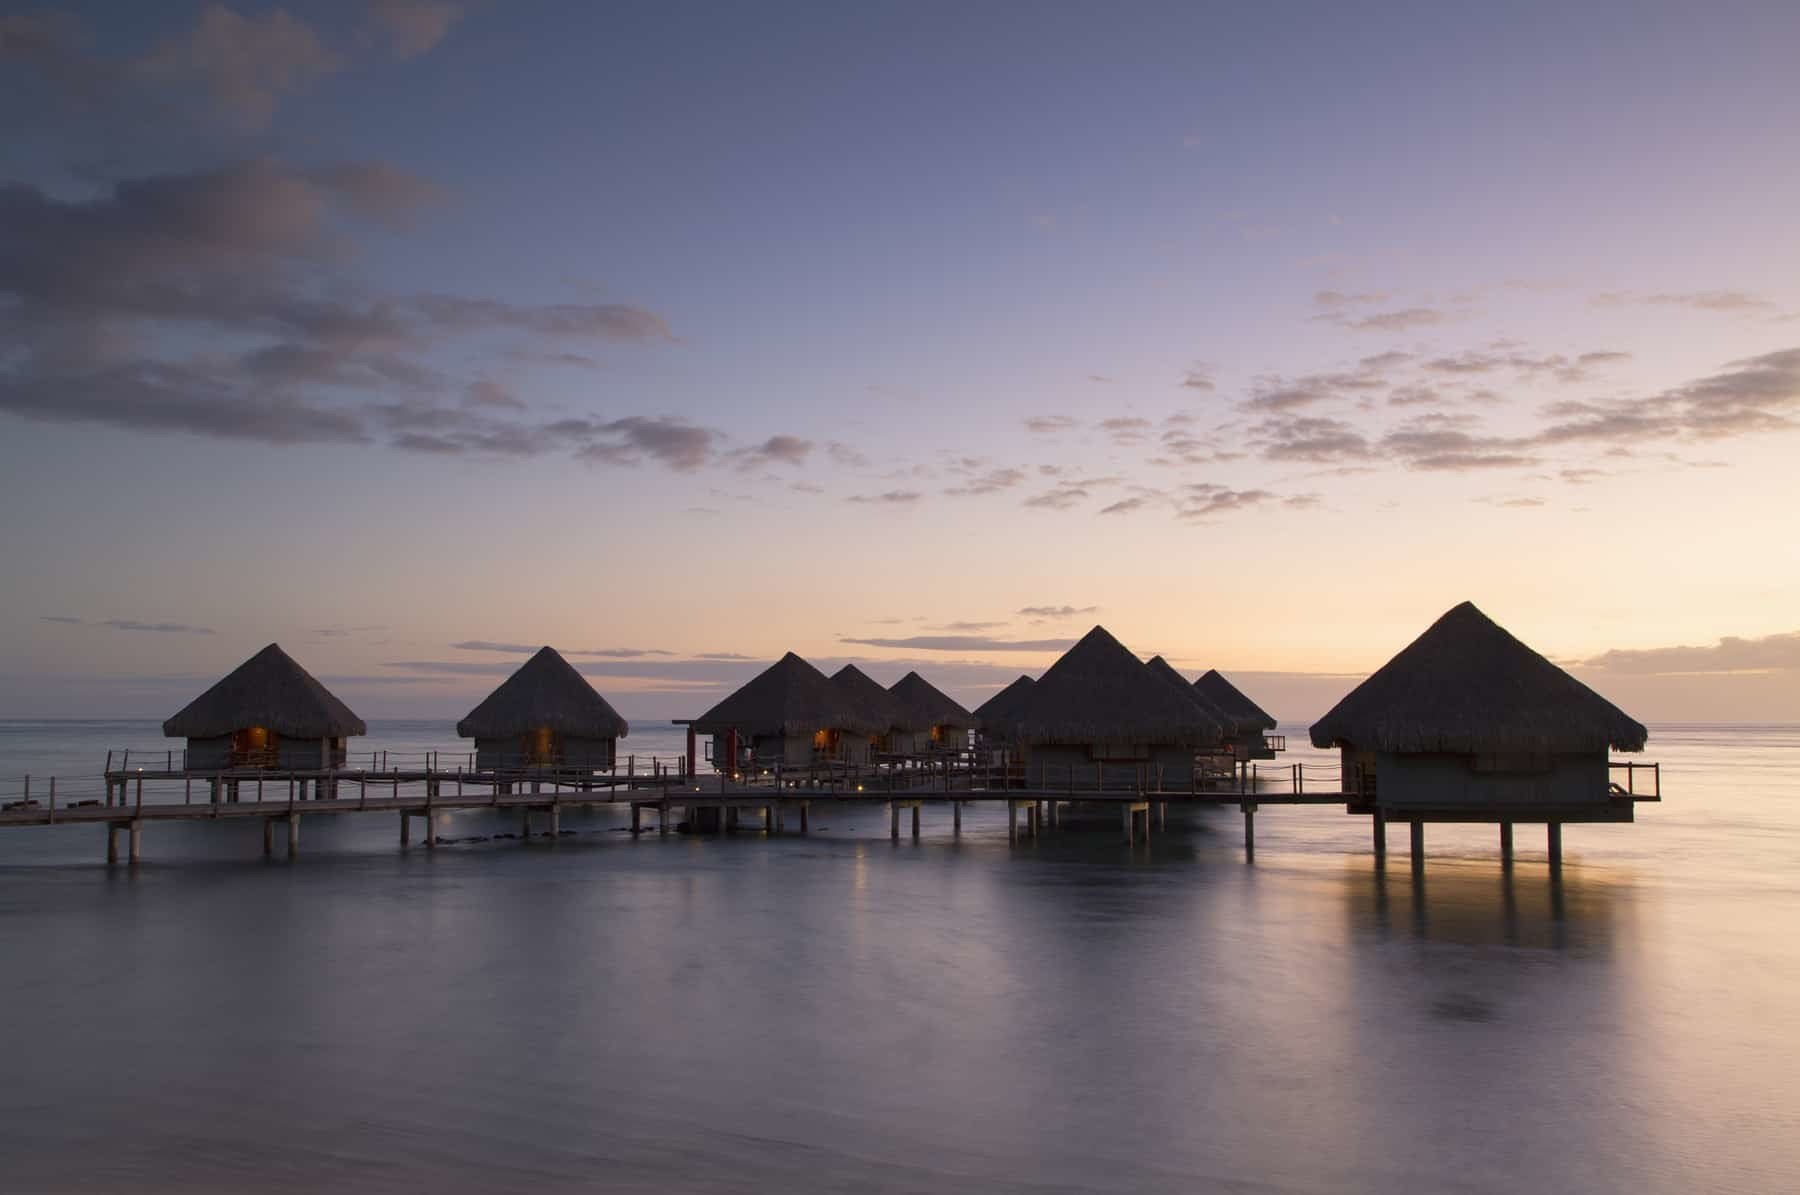 View of overwater bungalows at Le Meridien Tahiti Hotel at sunset, Pape'ete, Tahiti, French Polynesia